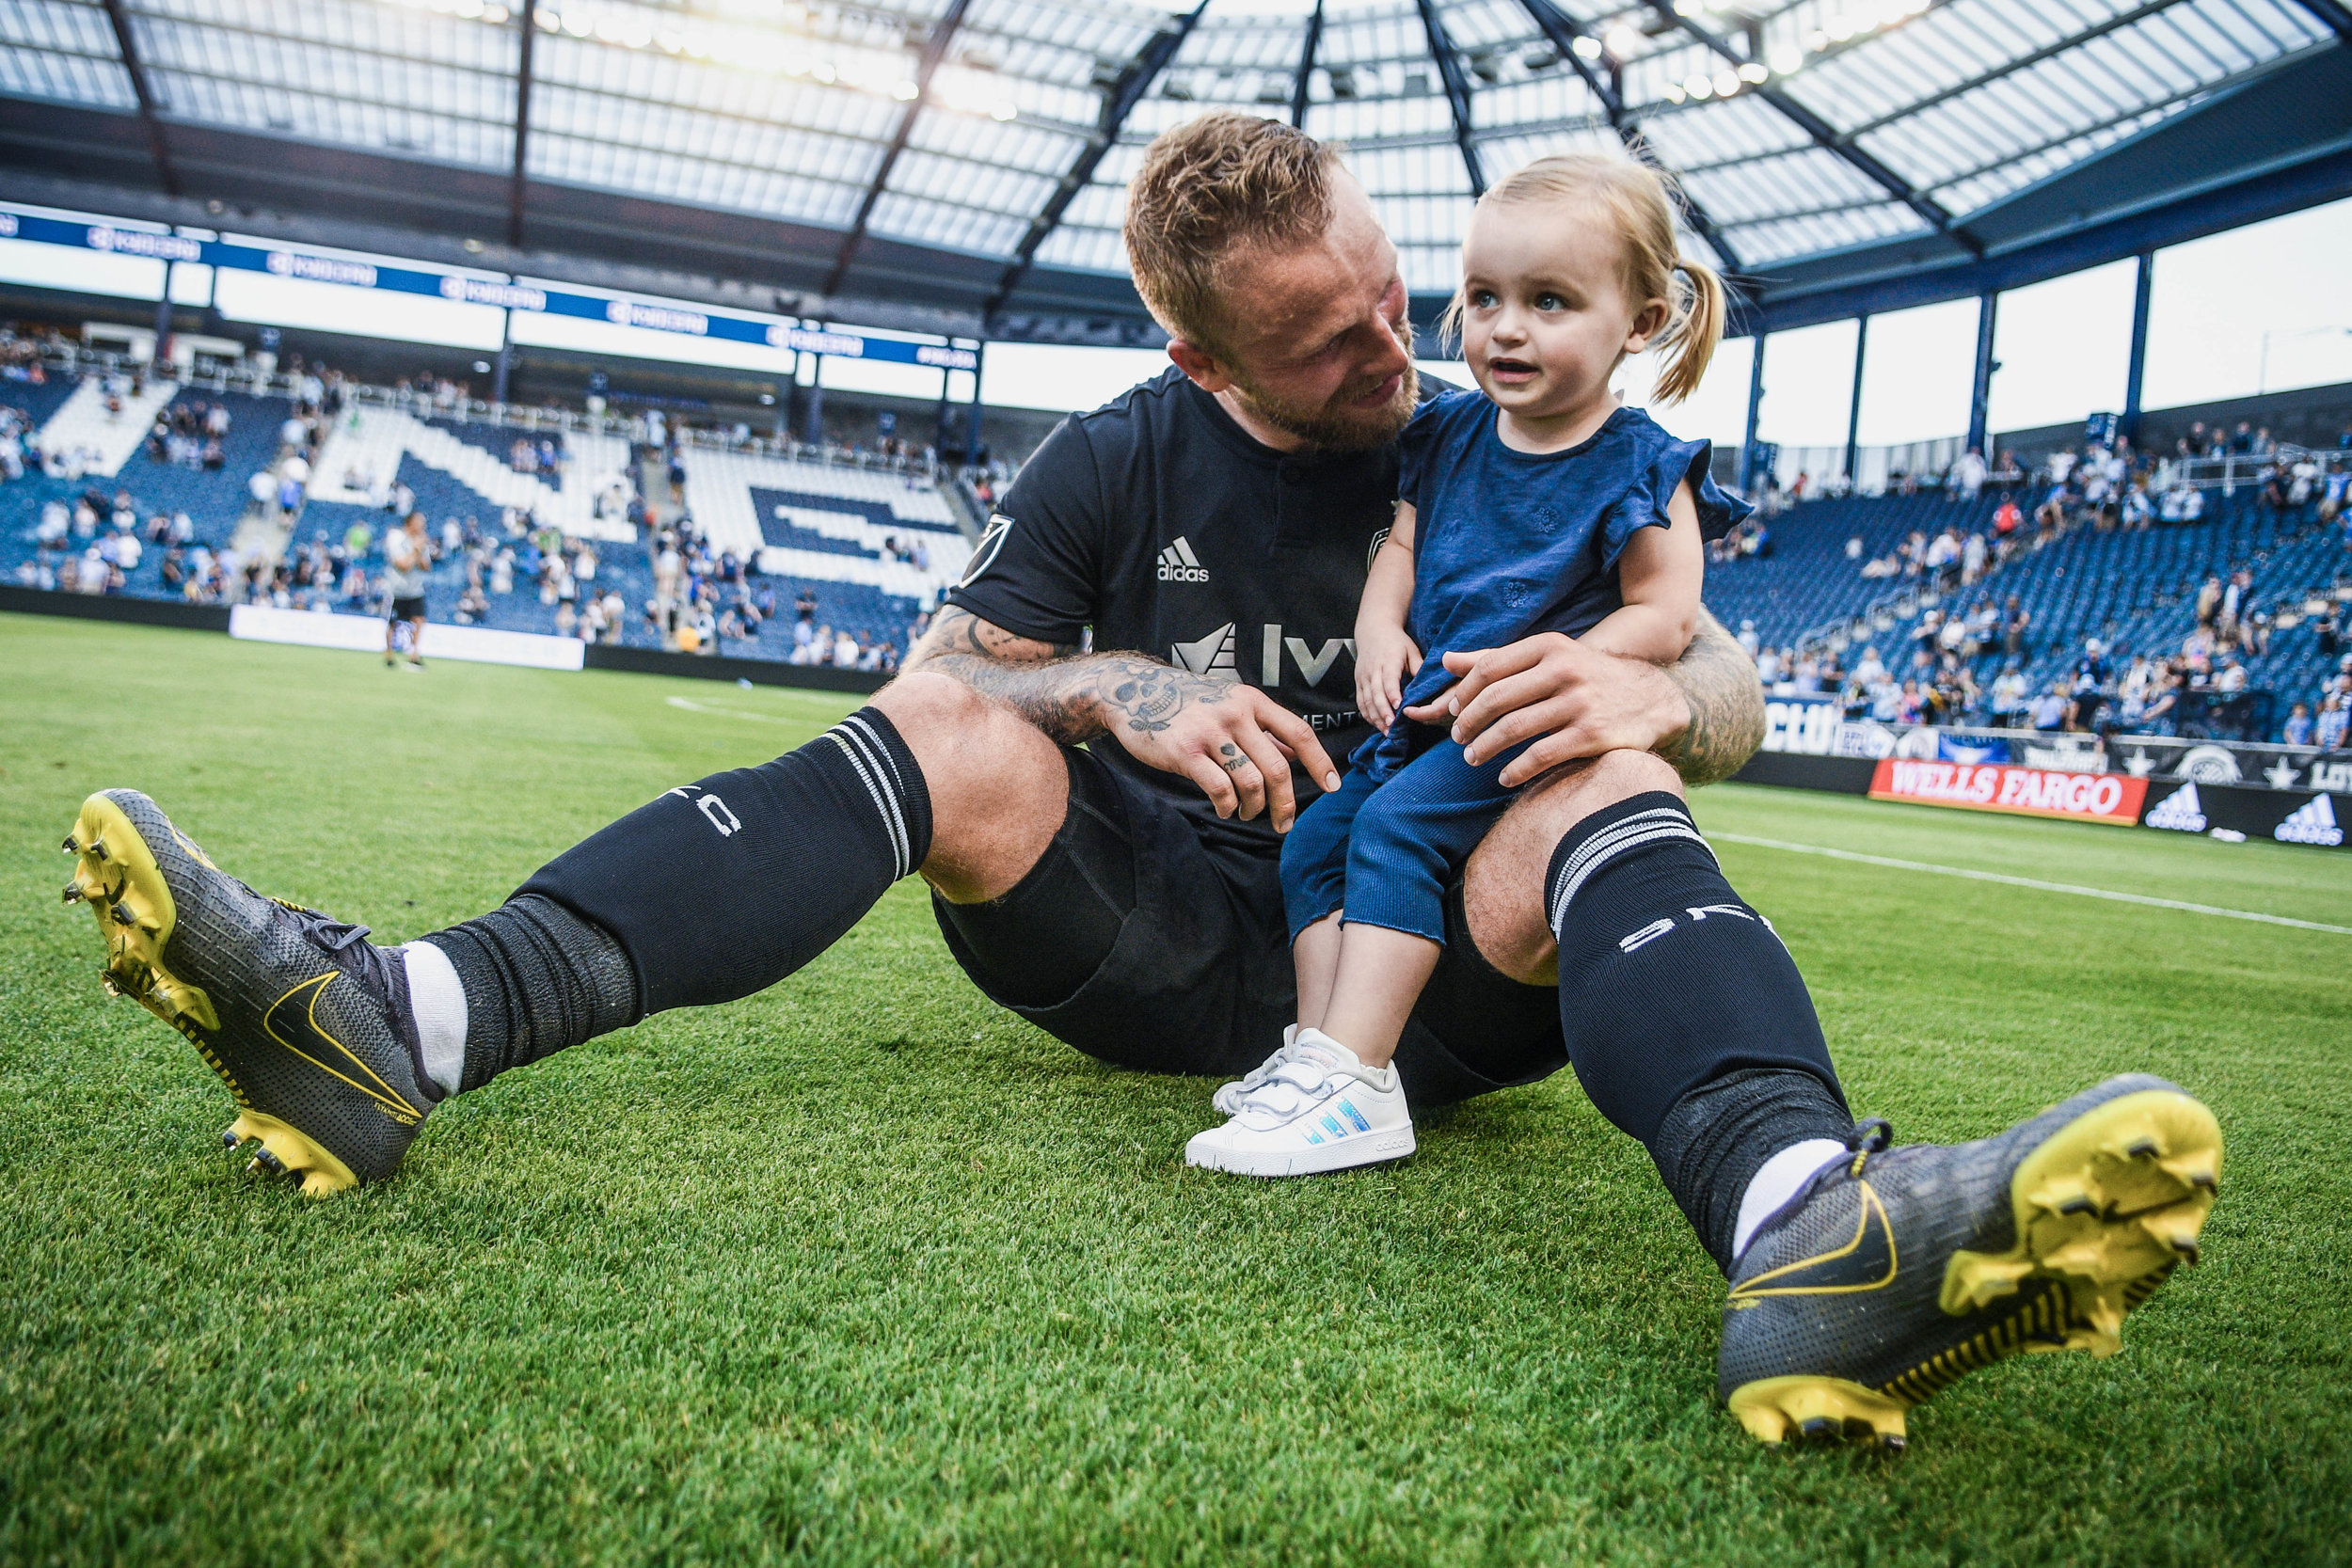 Johnny Russell (7) hugs his daughter after Sporting Kansas City's match against Seattle Sounders FC on Sunday, May 26, 2019 at Children's Mercy Park in Kansas City, Kansas. Sporting defeated the Sounders 3-2. (Photo by: Noah Riffe)